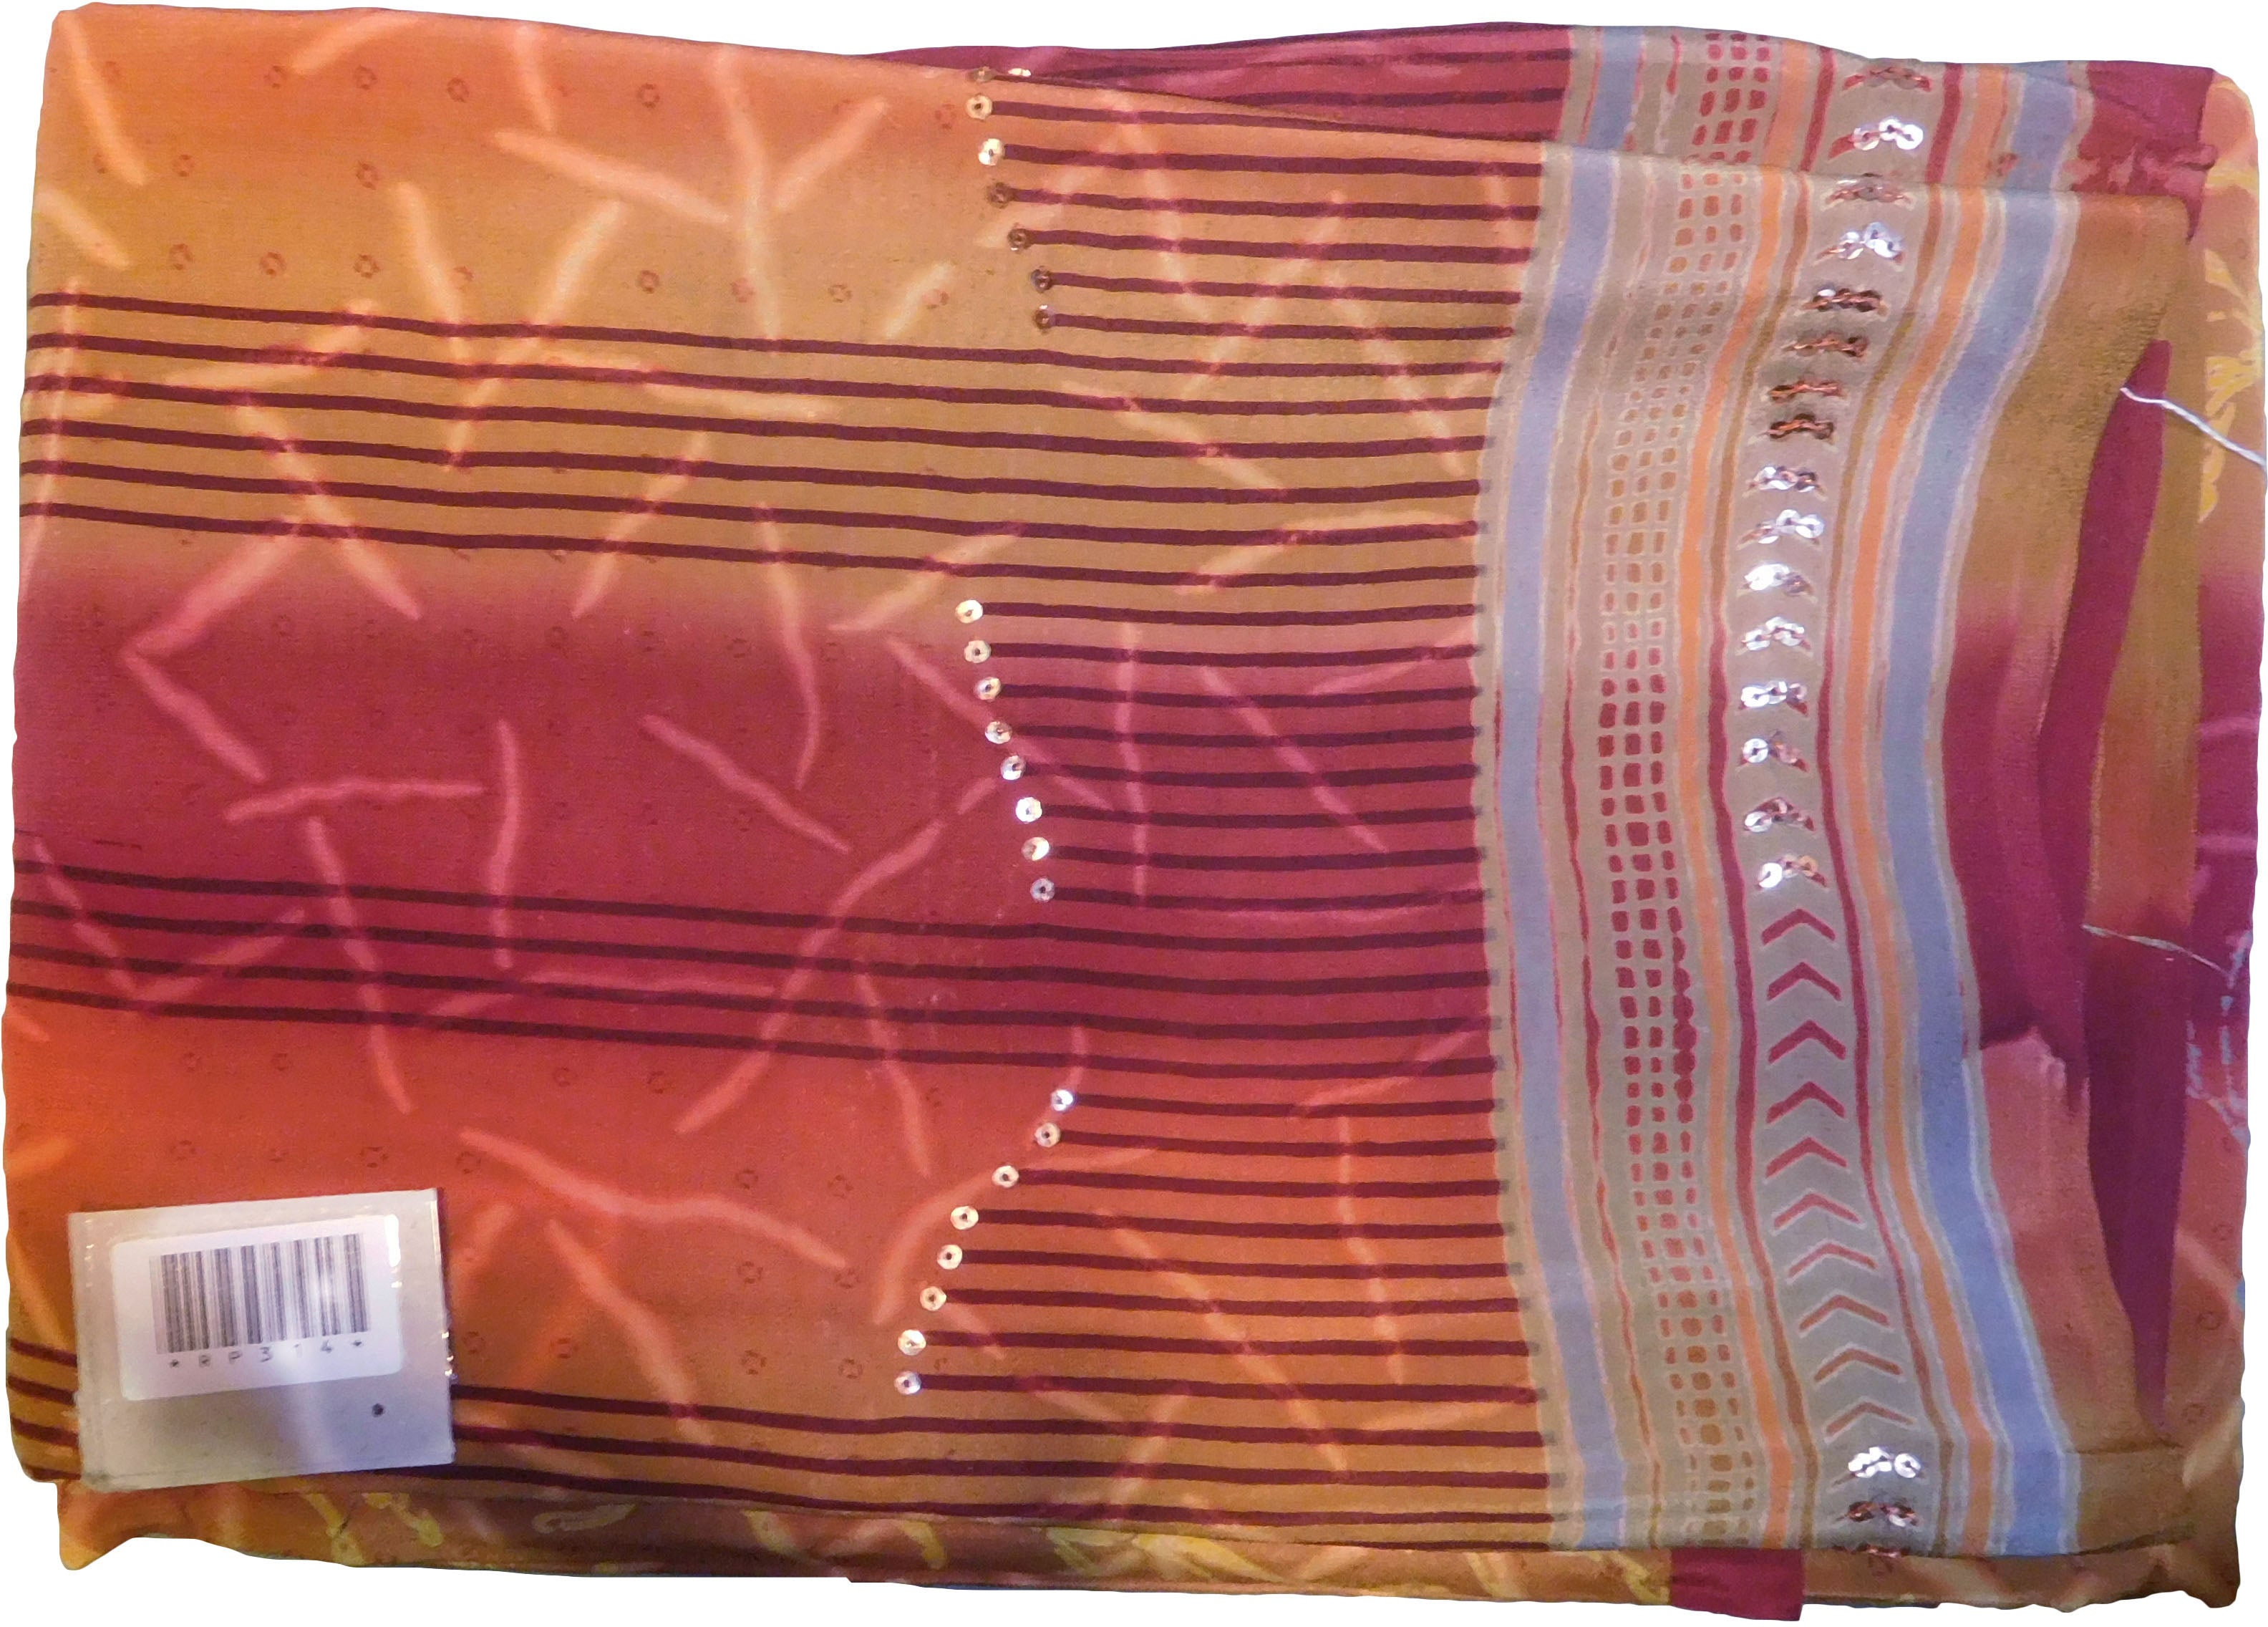 SMSAREE Multi Color Designer Wedding Partywear Pure Crepe Hand Brush Print Highlighted With Sequence Hand Embroidery Work Bridal Saree Sari With Blouse Piece RP314